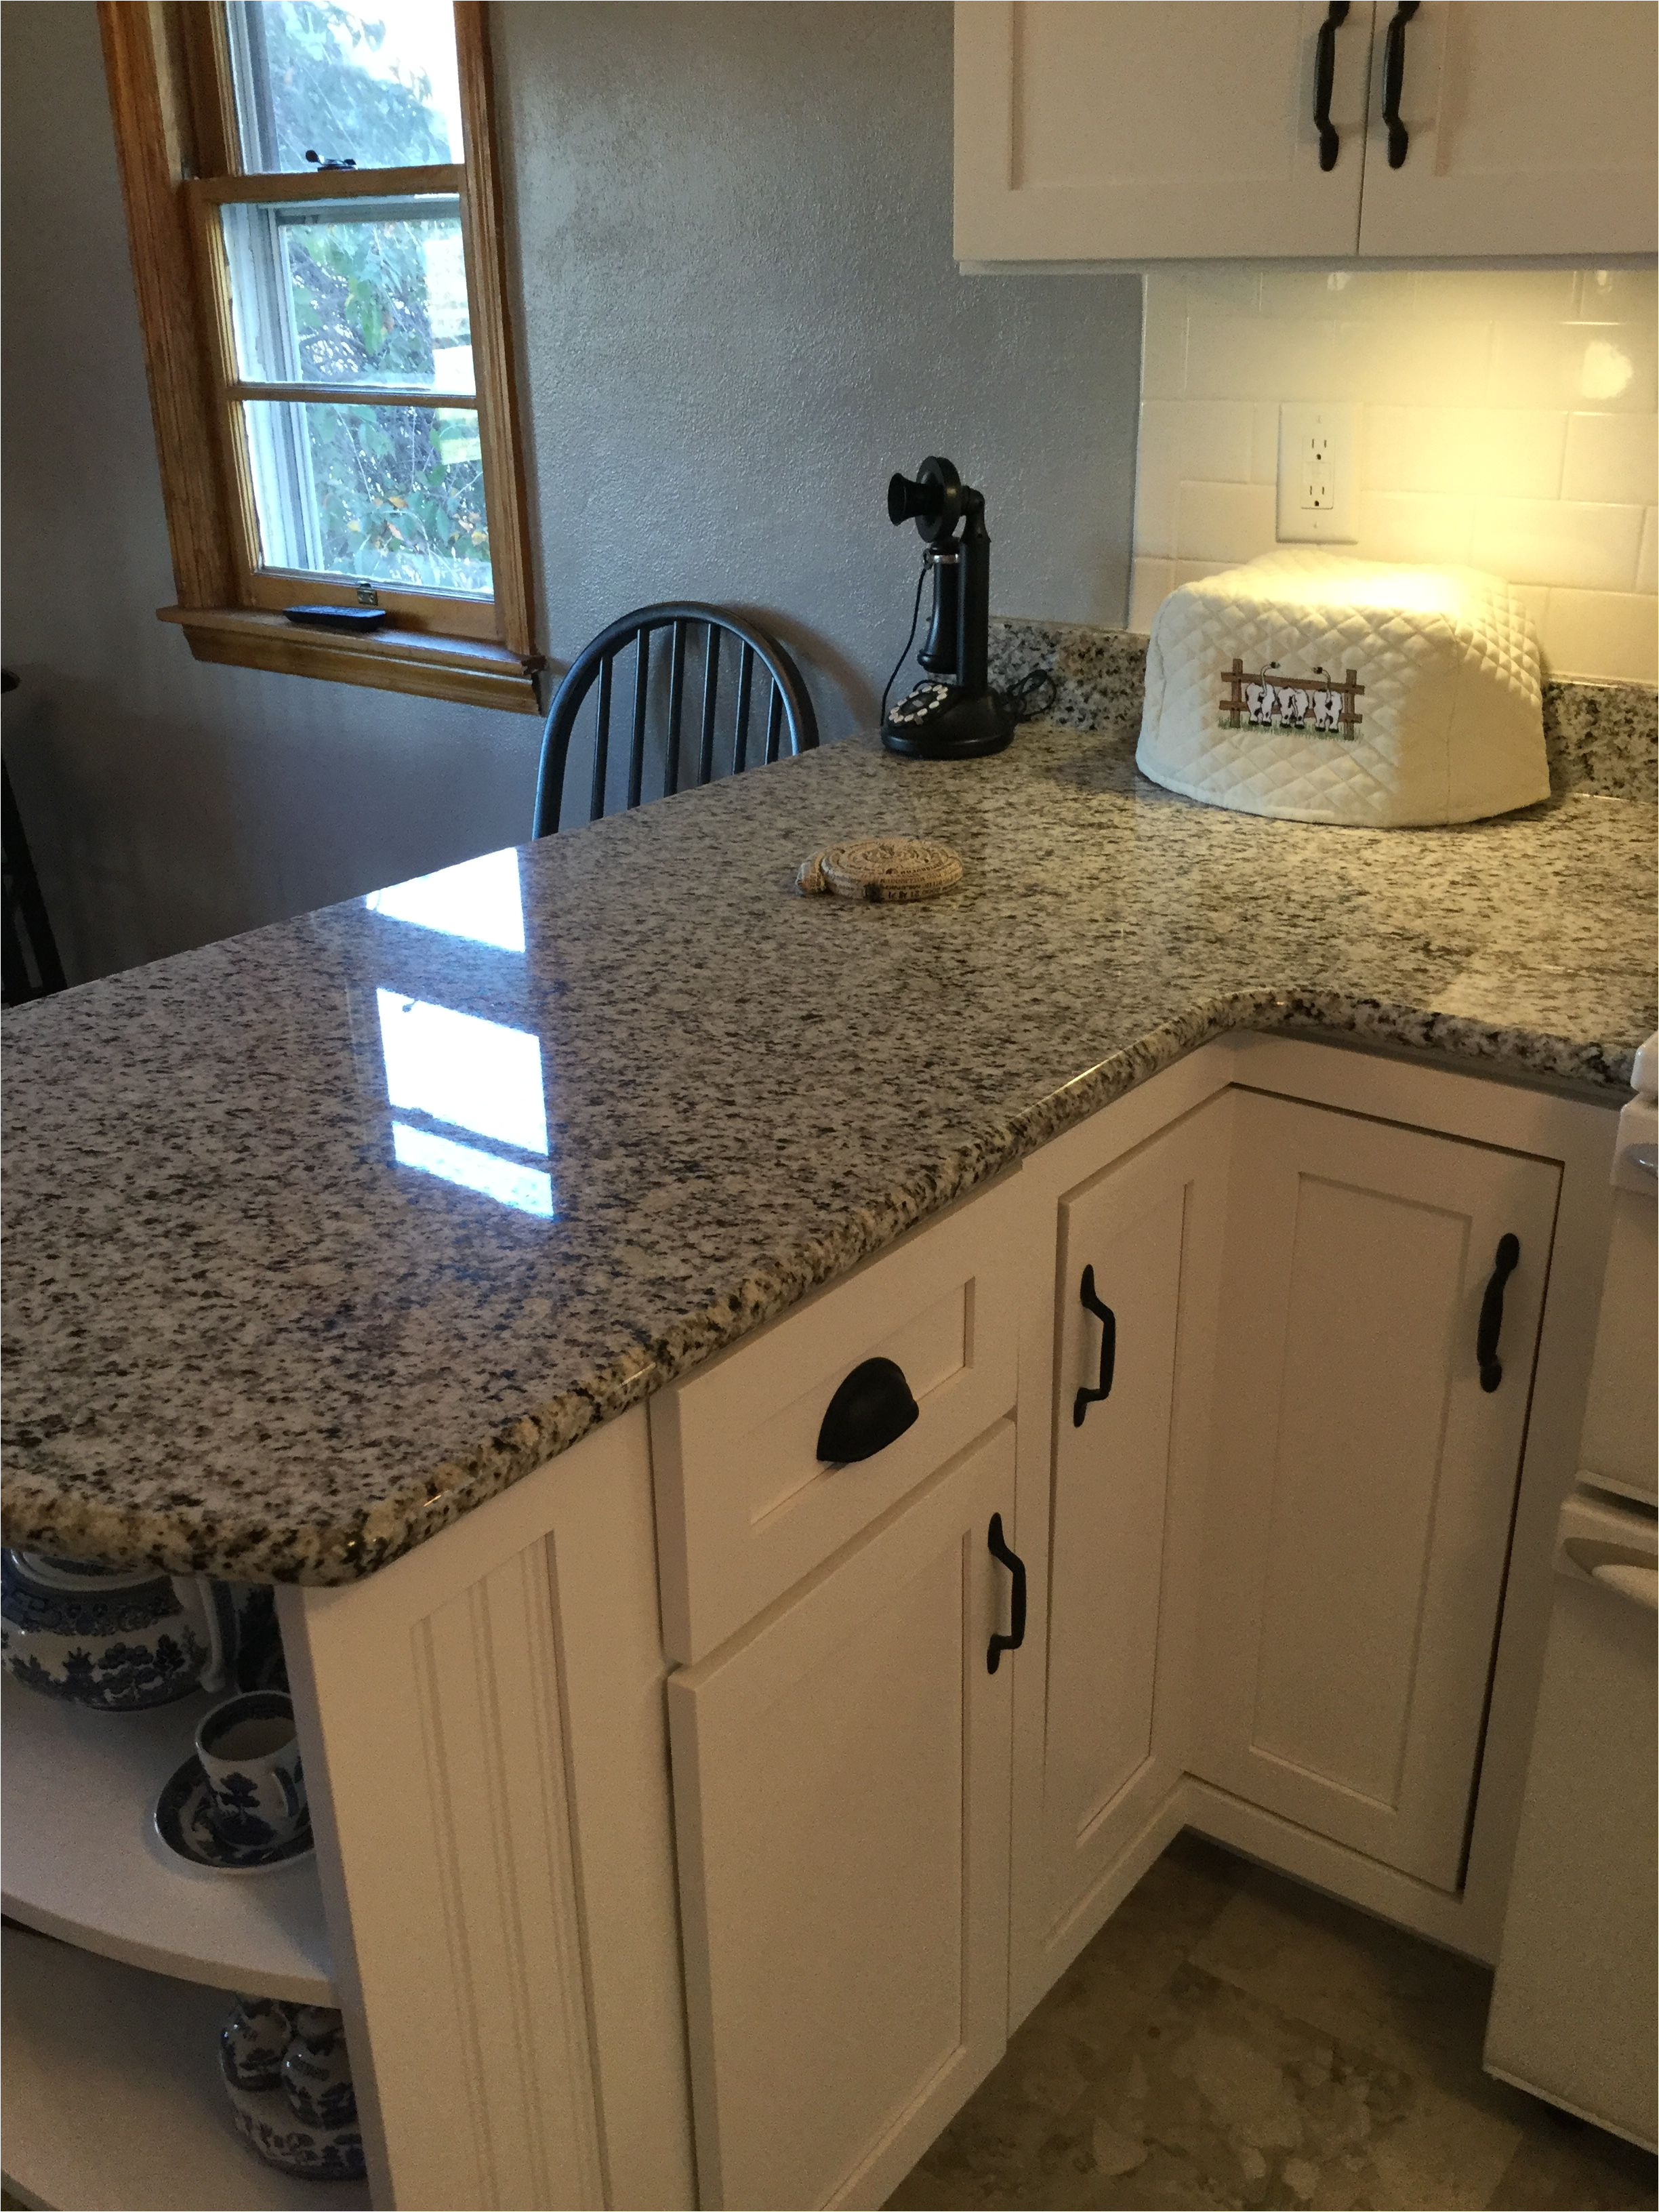 valle nevado granite classic marble stone hoagland in kitchen tops kitchen decor